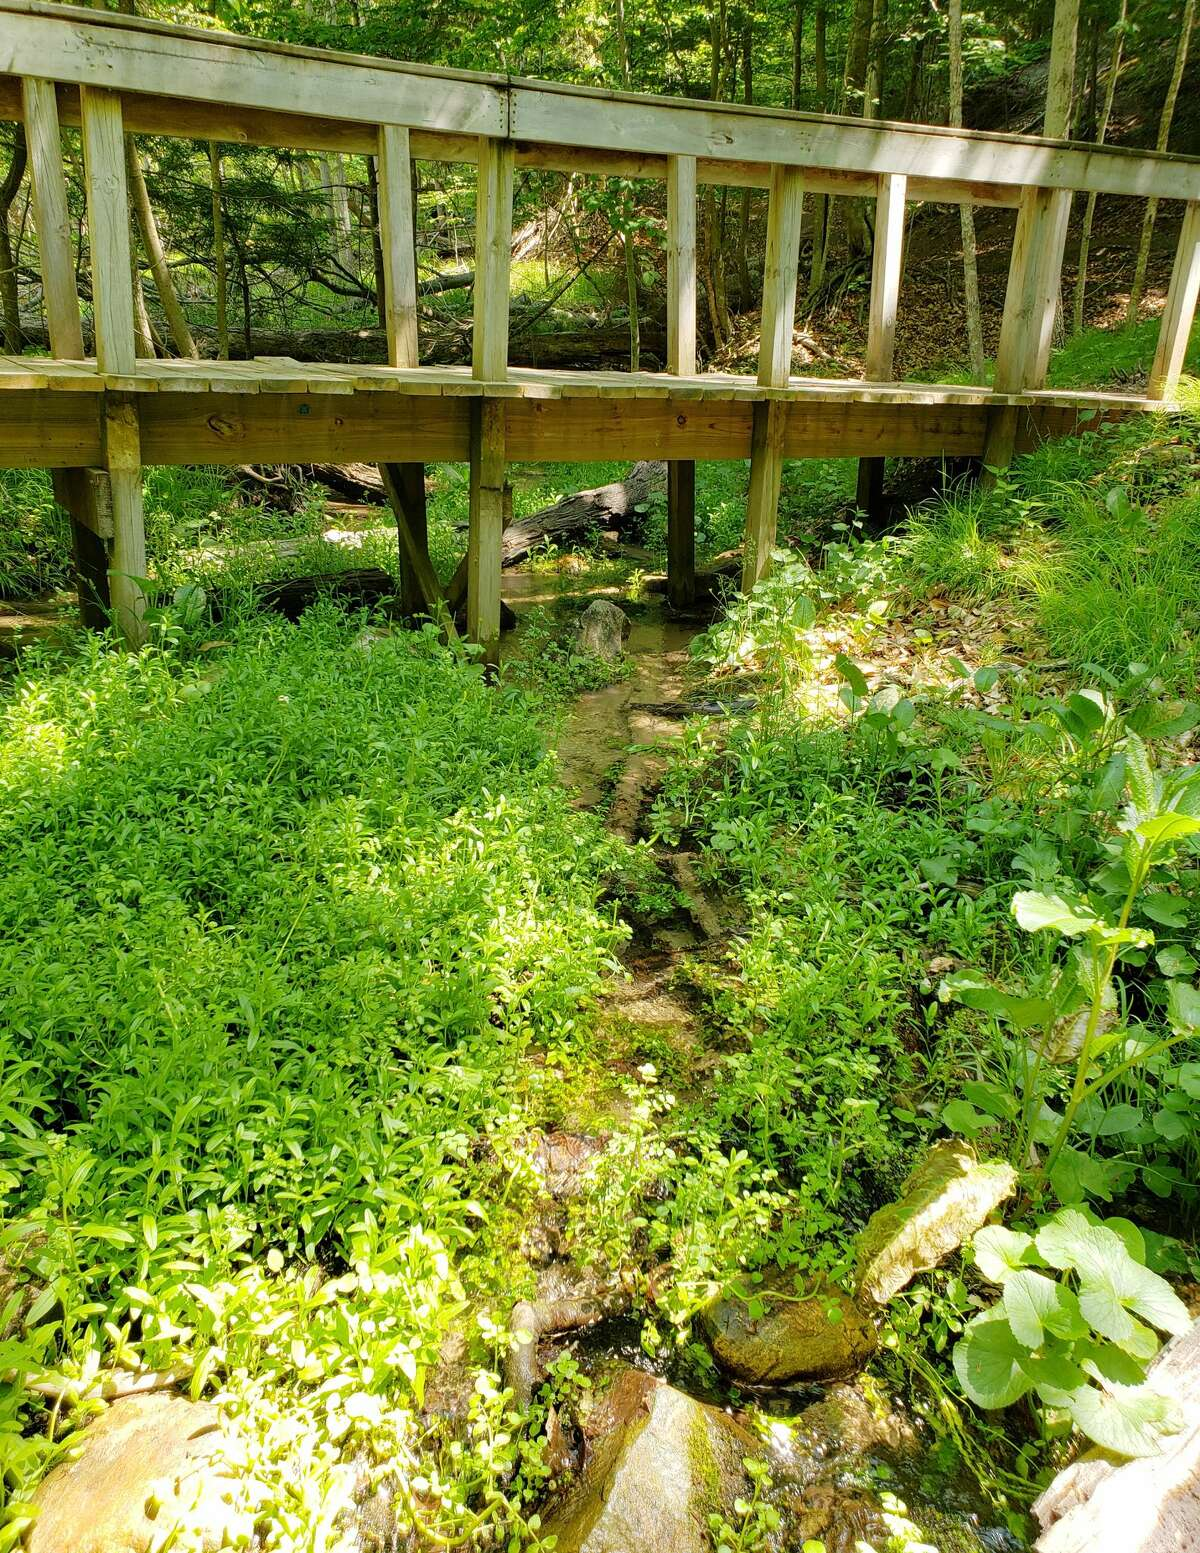 This stream near the springs at Glen Park in Onekama is part of the Portage Lake watershed where a $40,000 grant was awarded and applicats are seeking community input on how the funds should be used for the area.